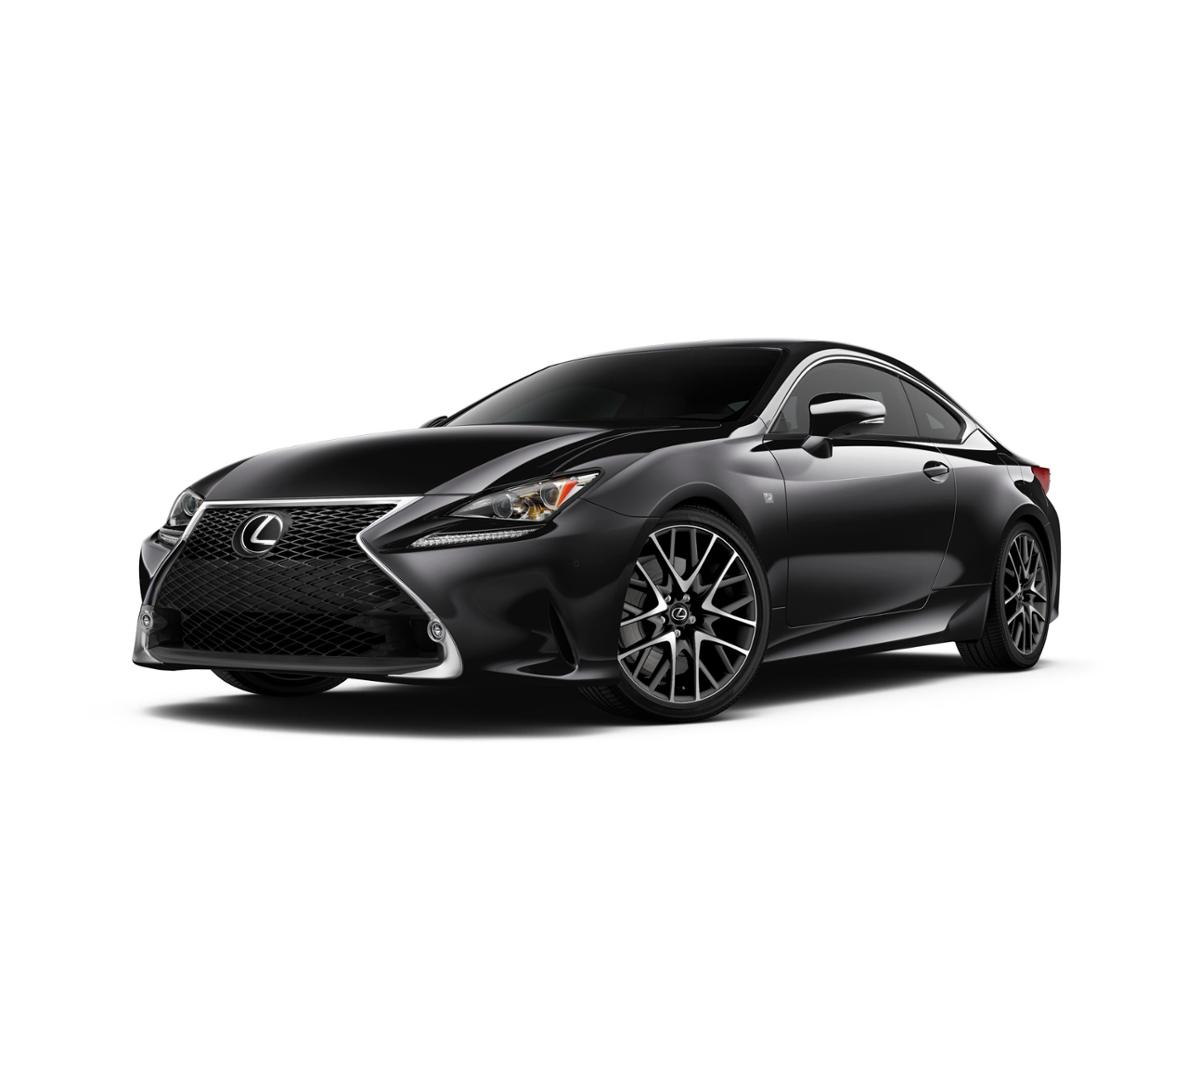 2018 Lexus RC 350 Vehicle Photo in Bedford, NH 03110